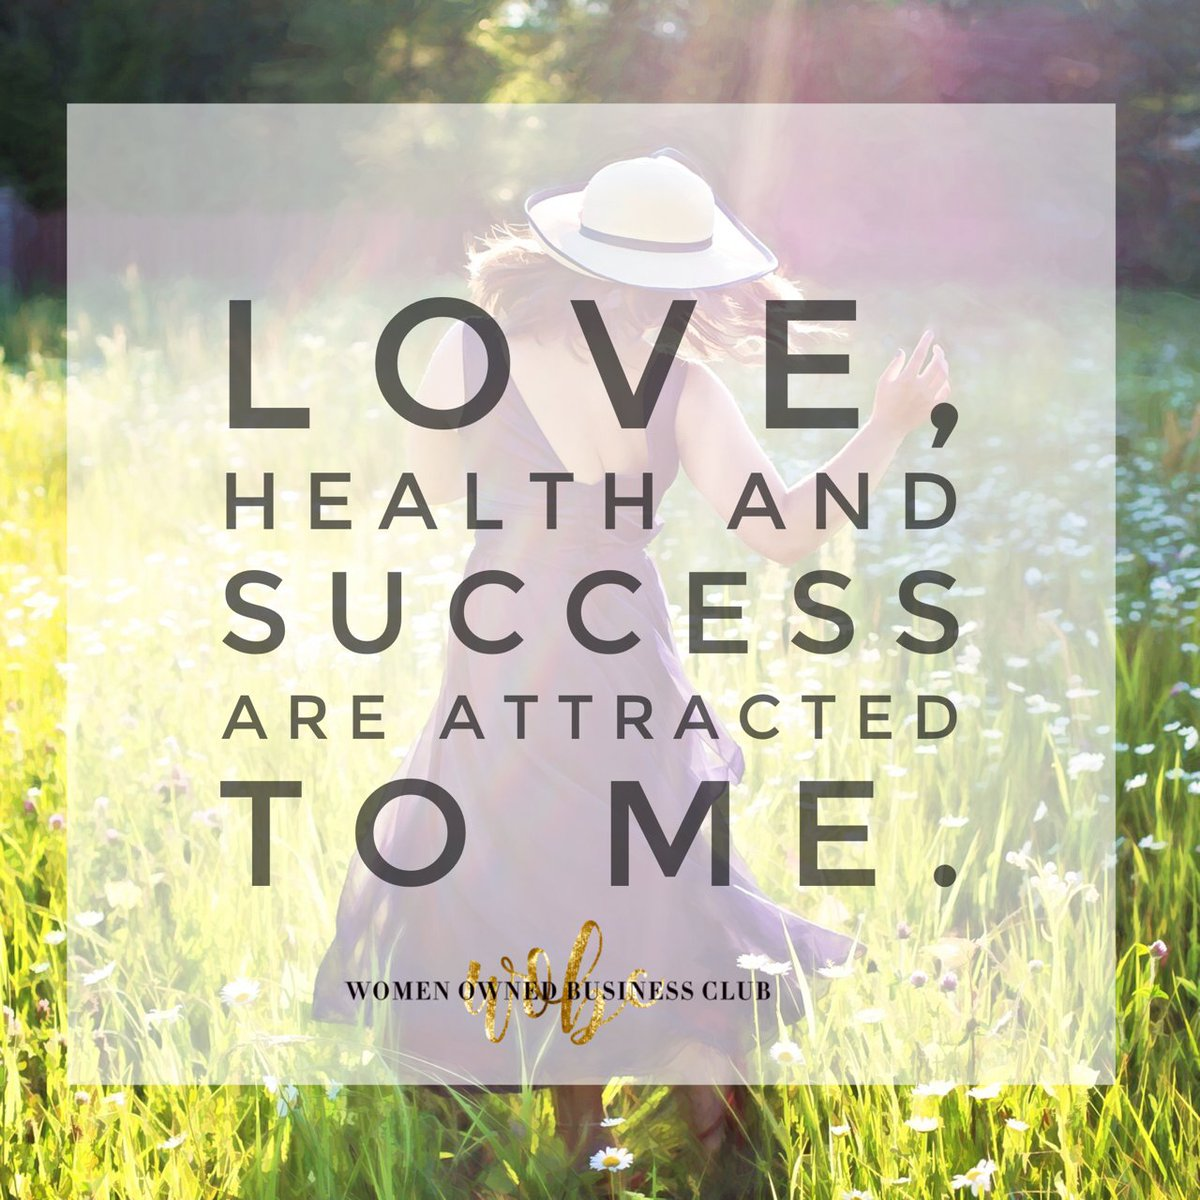 Love, health and success are attracted to me. #womaninbusiness #love #health #success #femaleentrepreneur #ilovewobcpic.twitter.com/BNWereUELQ